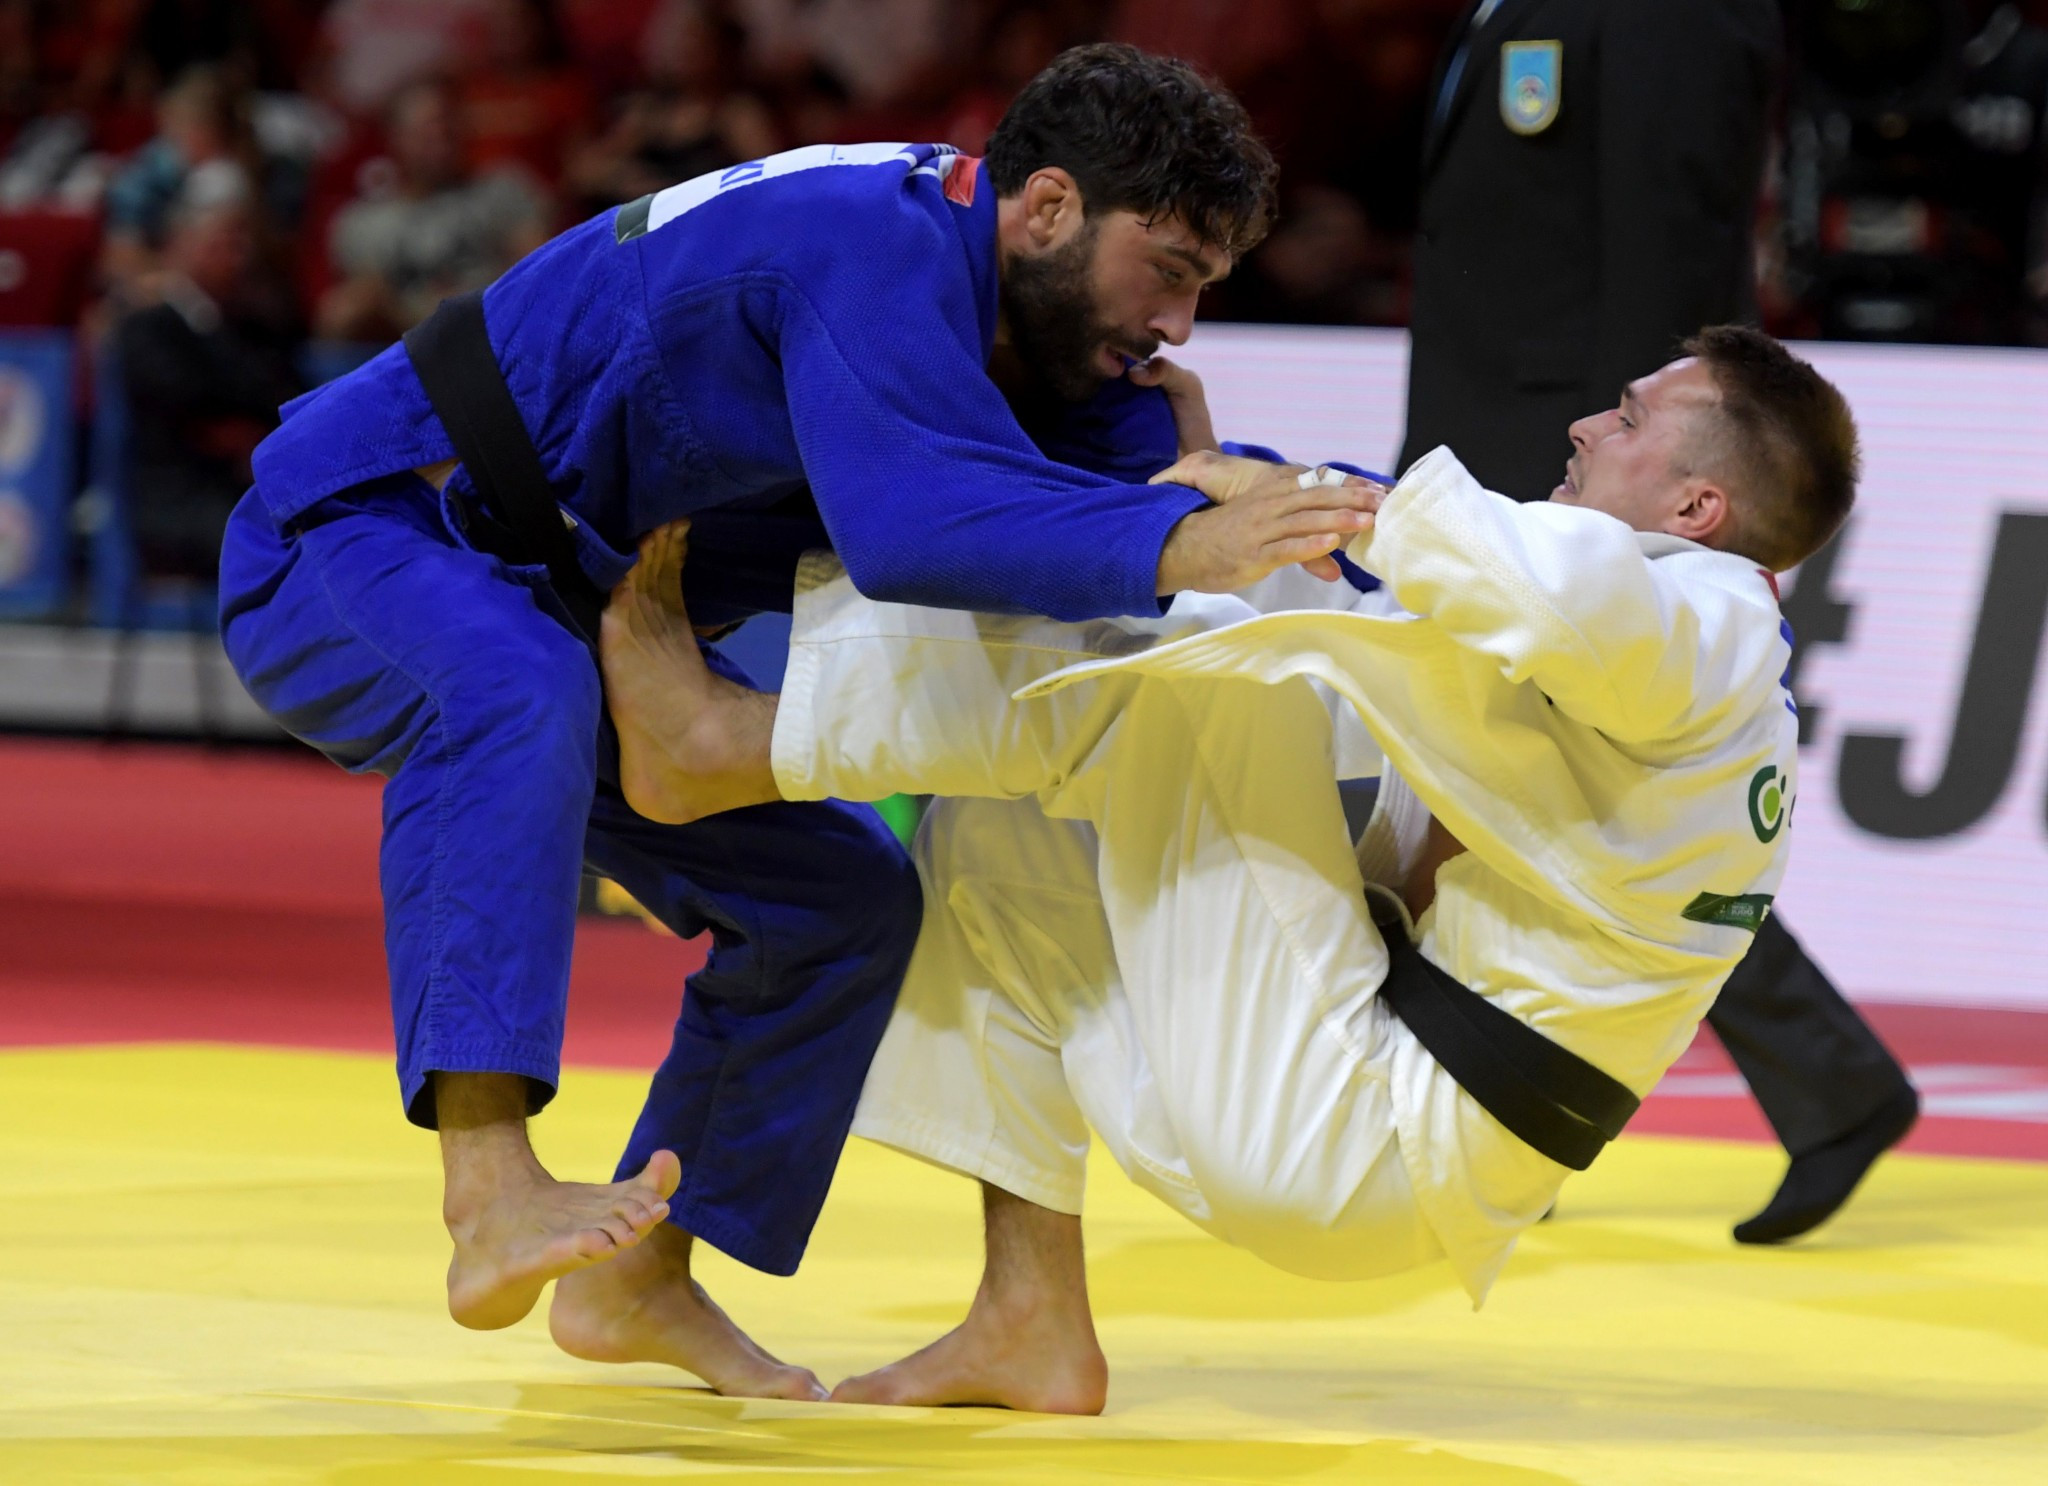 Germany's Alexander Wieczerzak won his first world title when he beat Italy's Matteo Marconcini in the under 81kg ©Getty Images